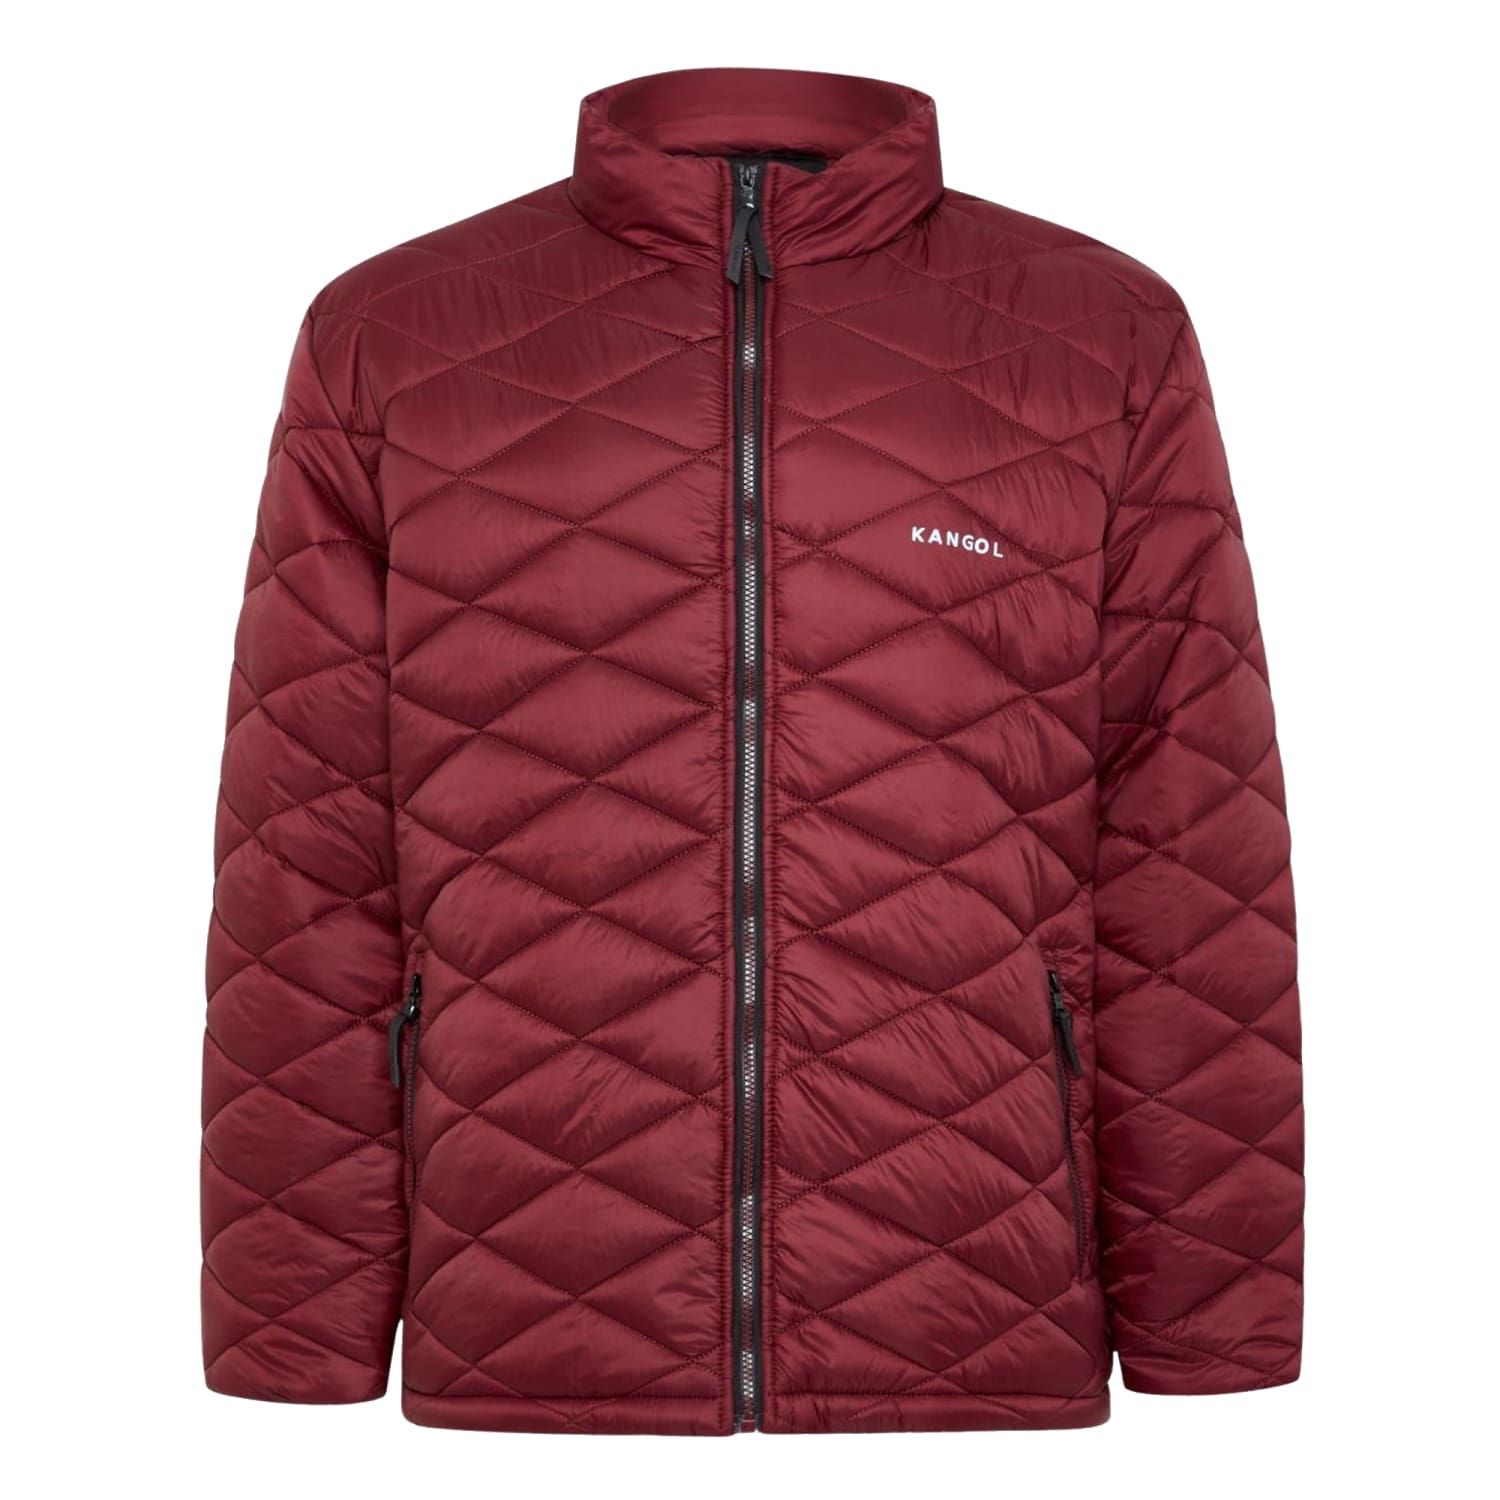 Kangol Padded Jacket - Cavern - Port Royale 1